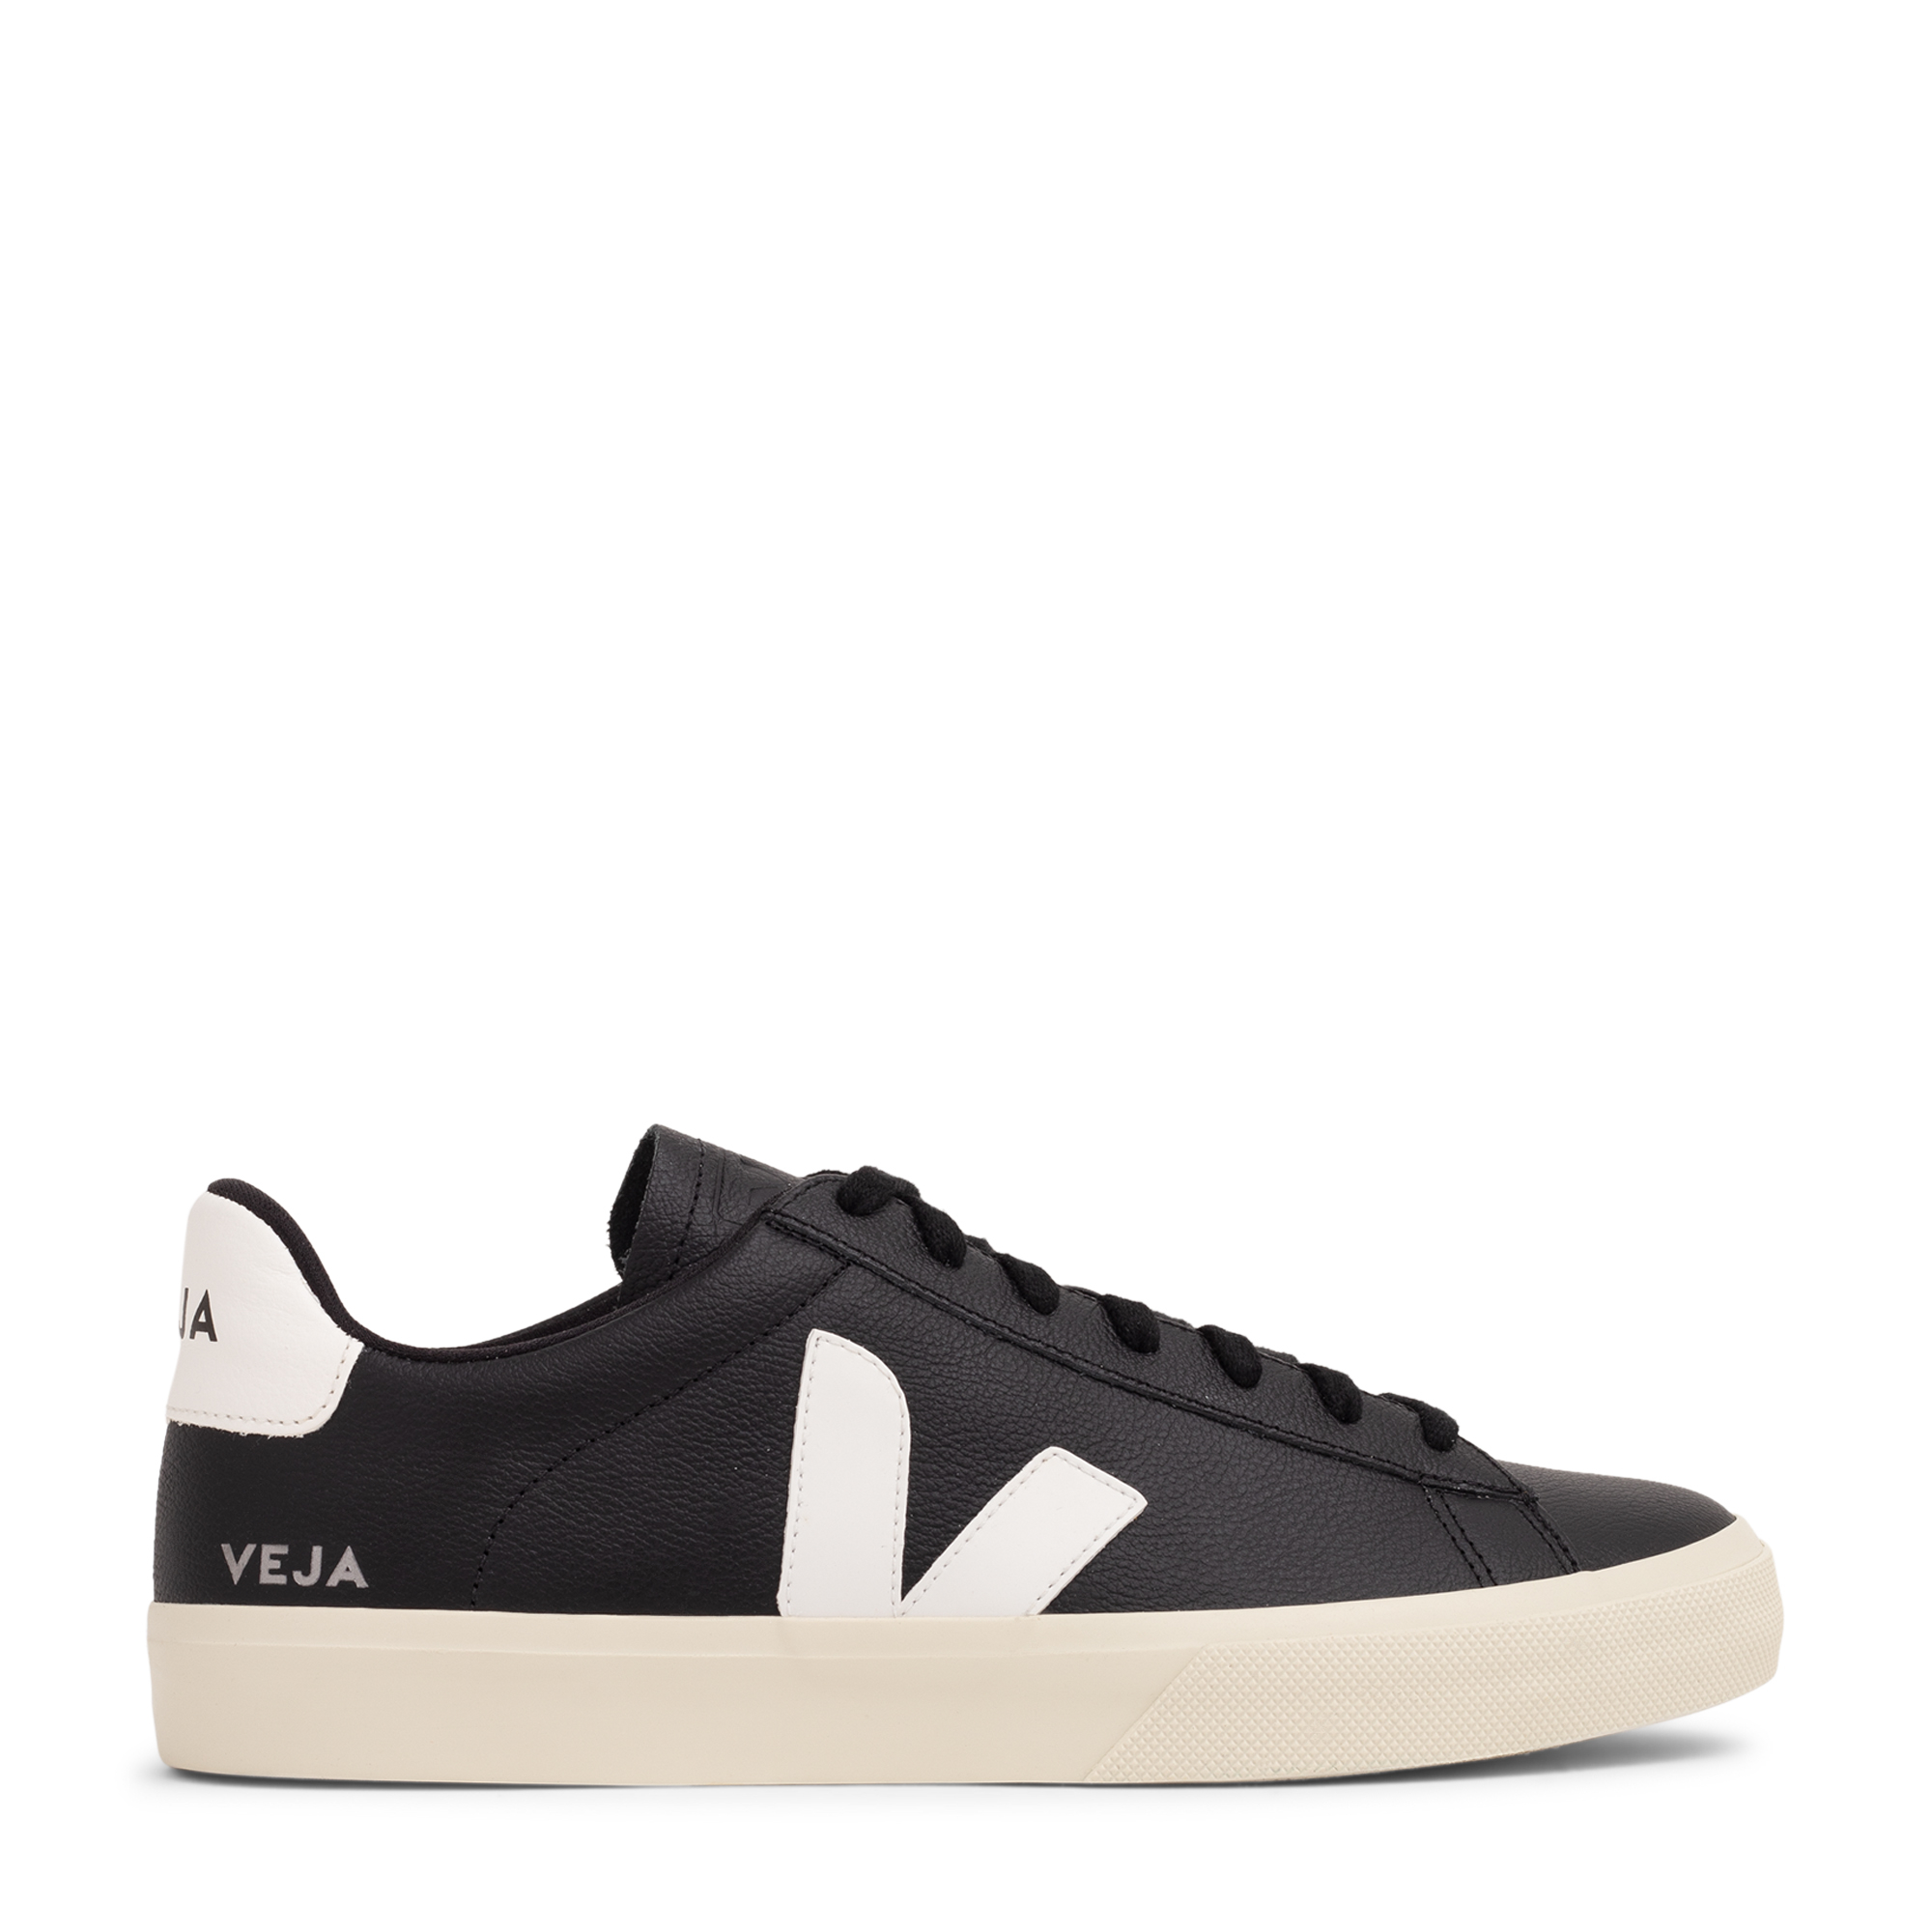 Campo sneakers